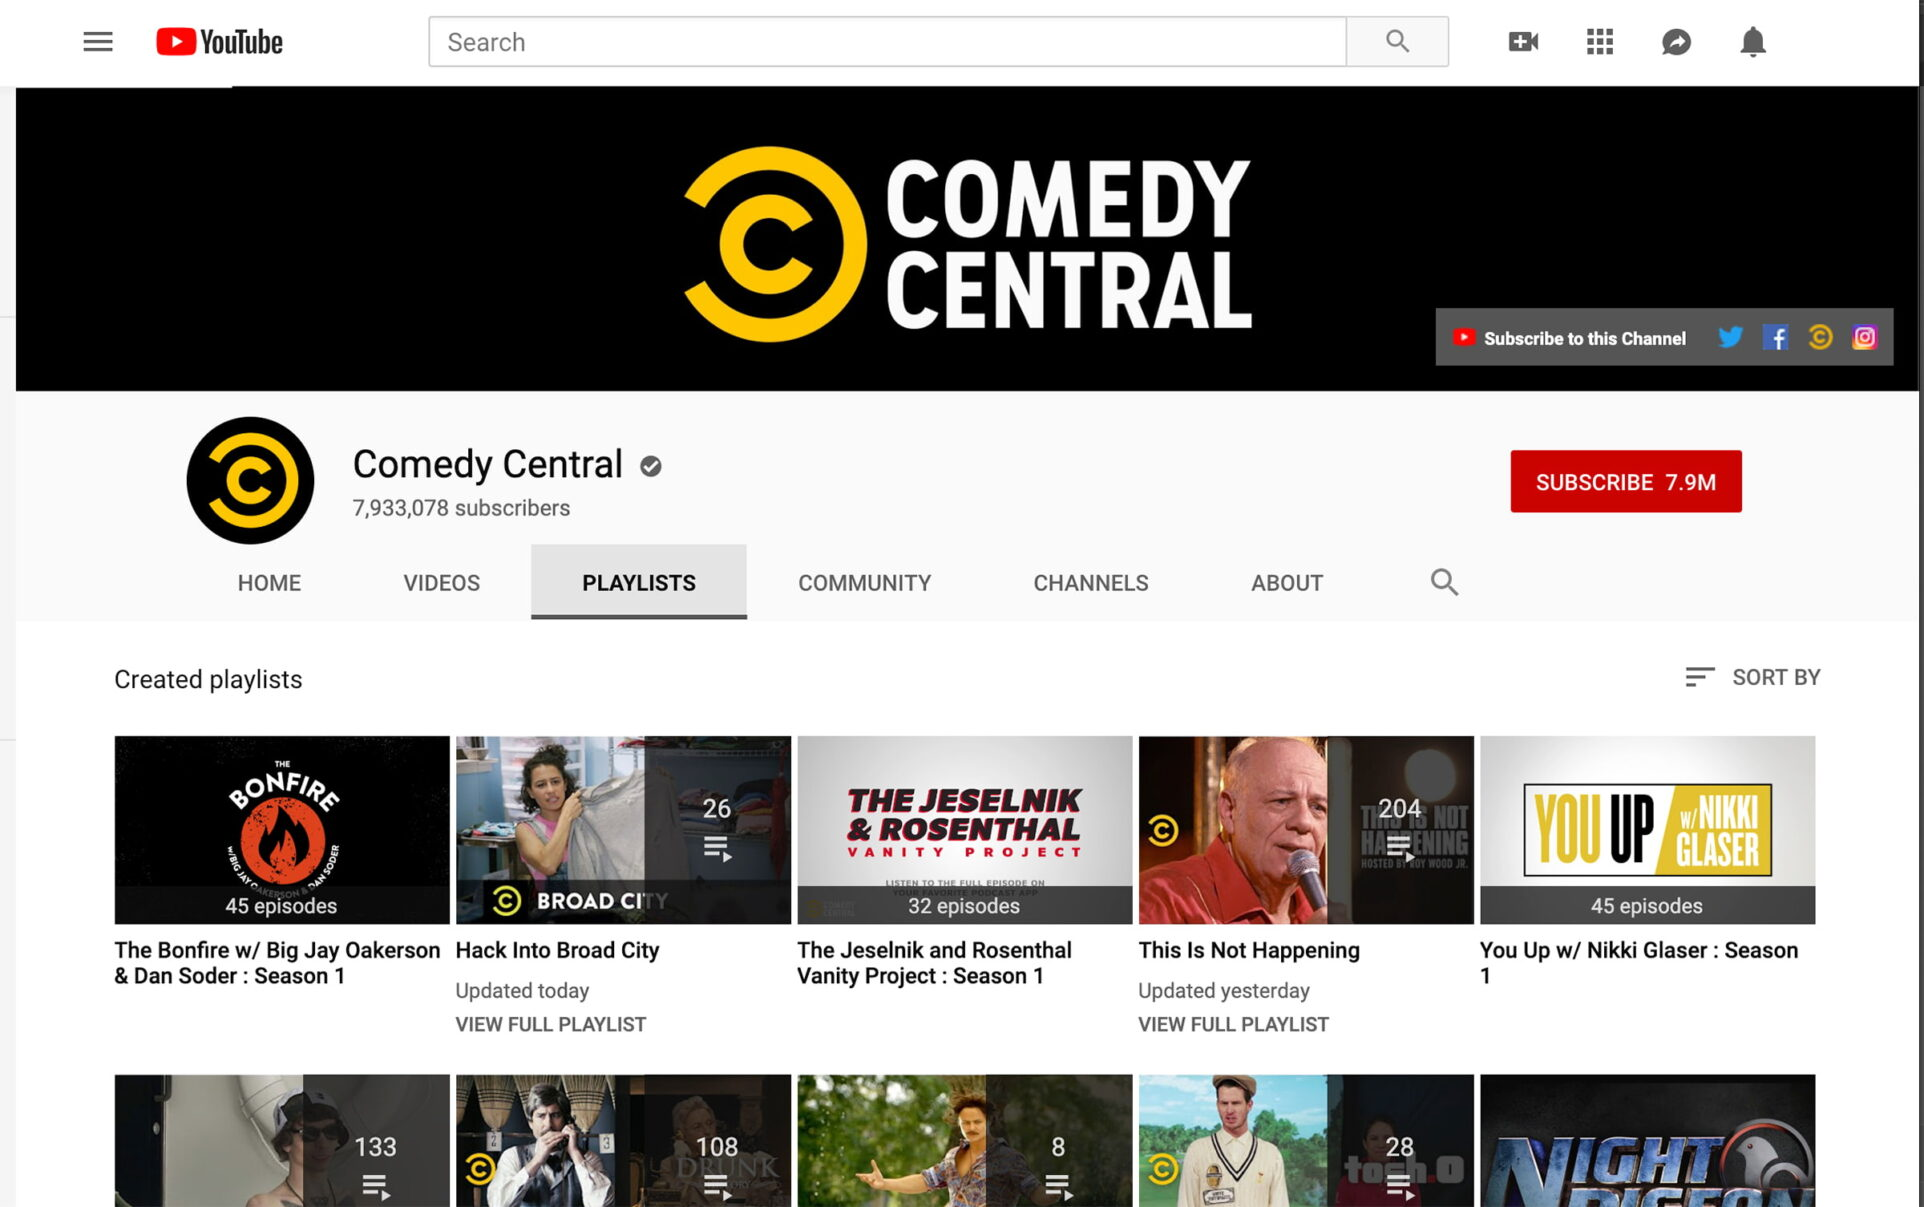 screenshot of Comedy Central's YouTube channel